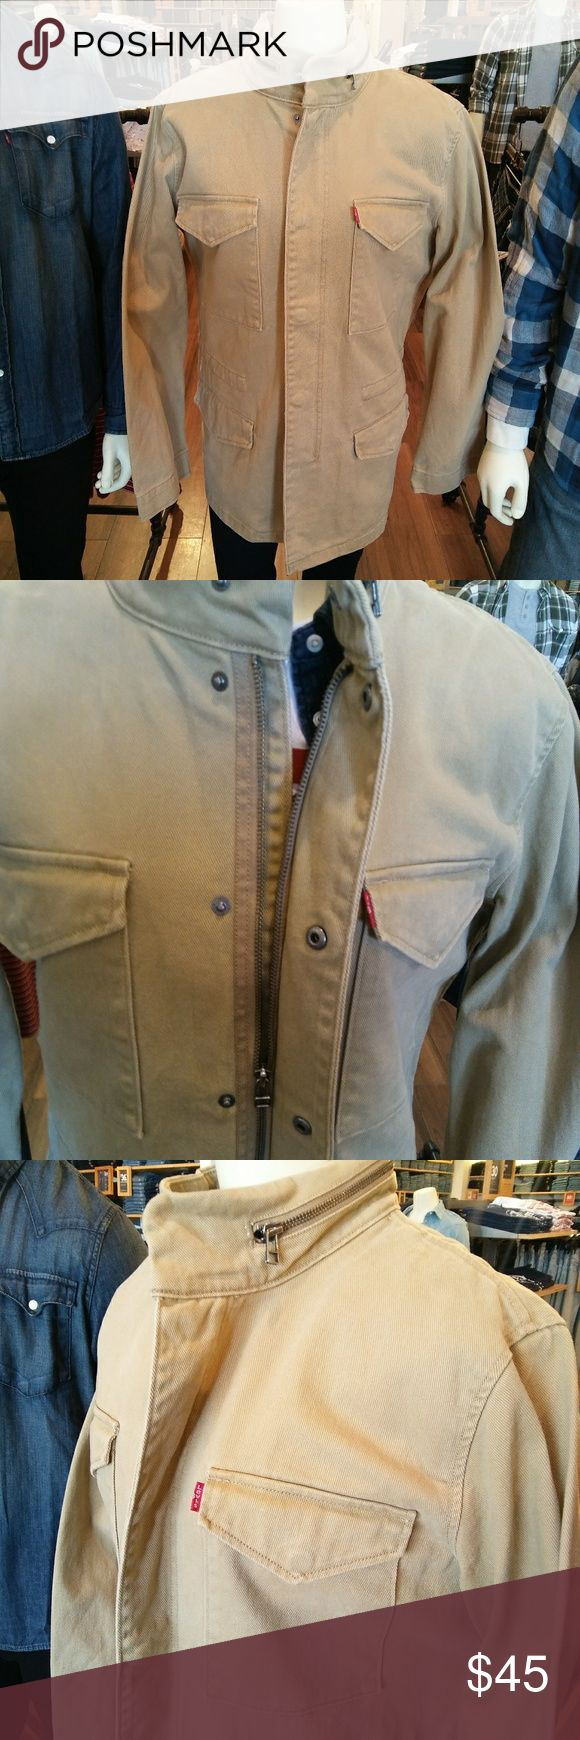 Levi's Canvas Khaki Jean Jacket For Sale I Have This Brand New Sz Lg Mens Levi's Canvas Khaki Jacket. Heavy Duty Construction With Hoodie Made Into Collar. Jacket Retails For $69.99 Levi's Jeans